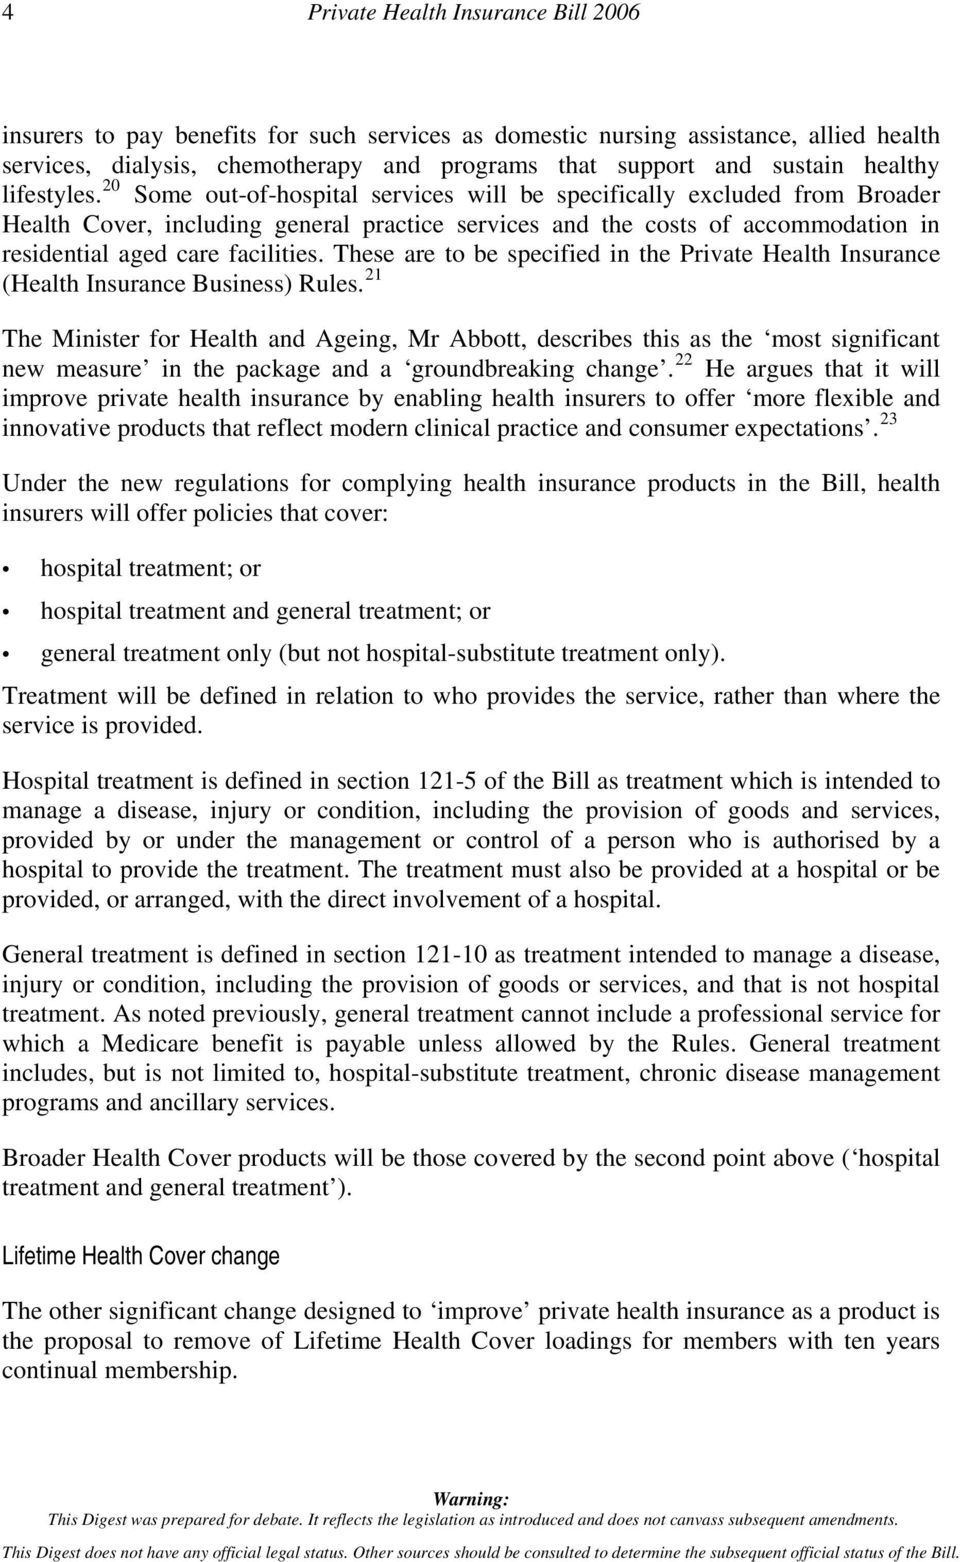 20 Some out-of-hospital services will be specifically excluded from Broader Health Cover, including general practice services and the costs of accommodation in residential aged care facilities.